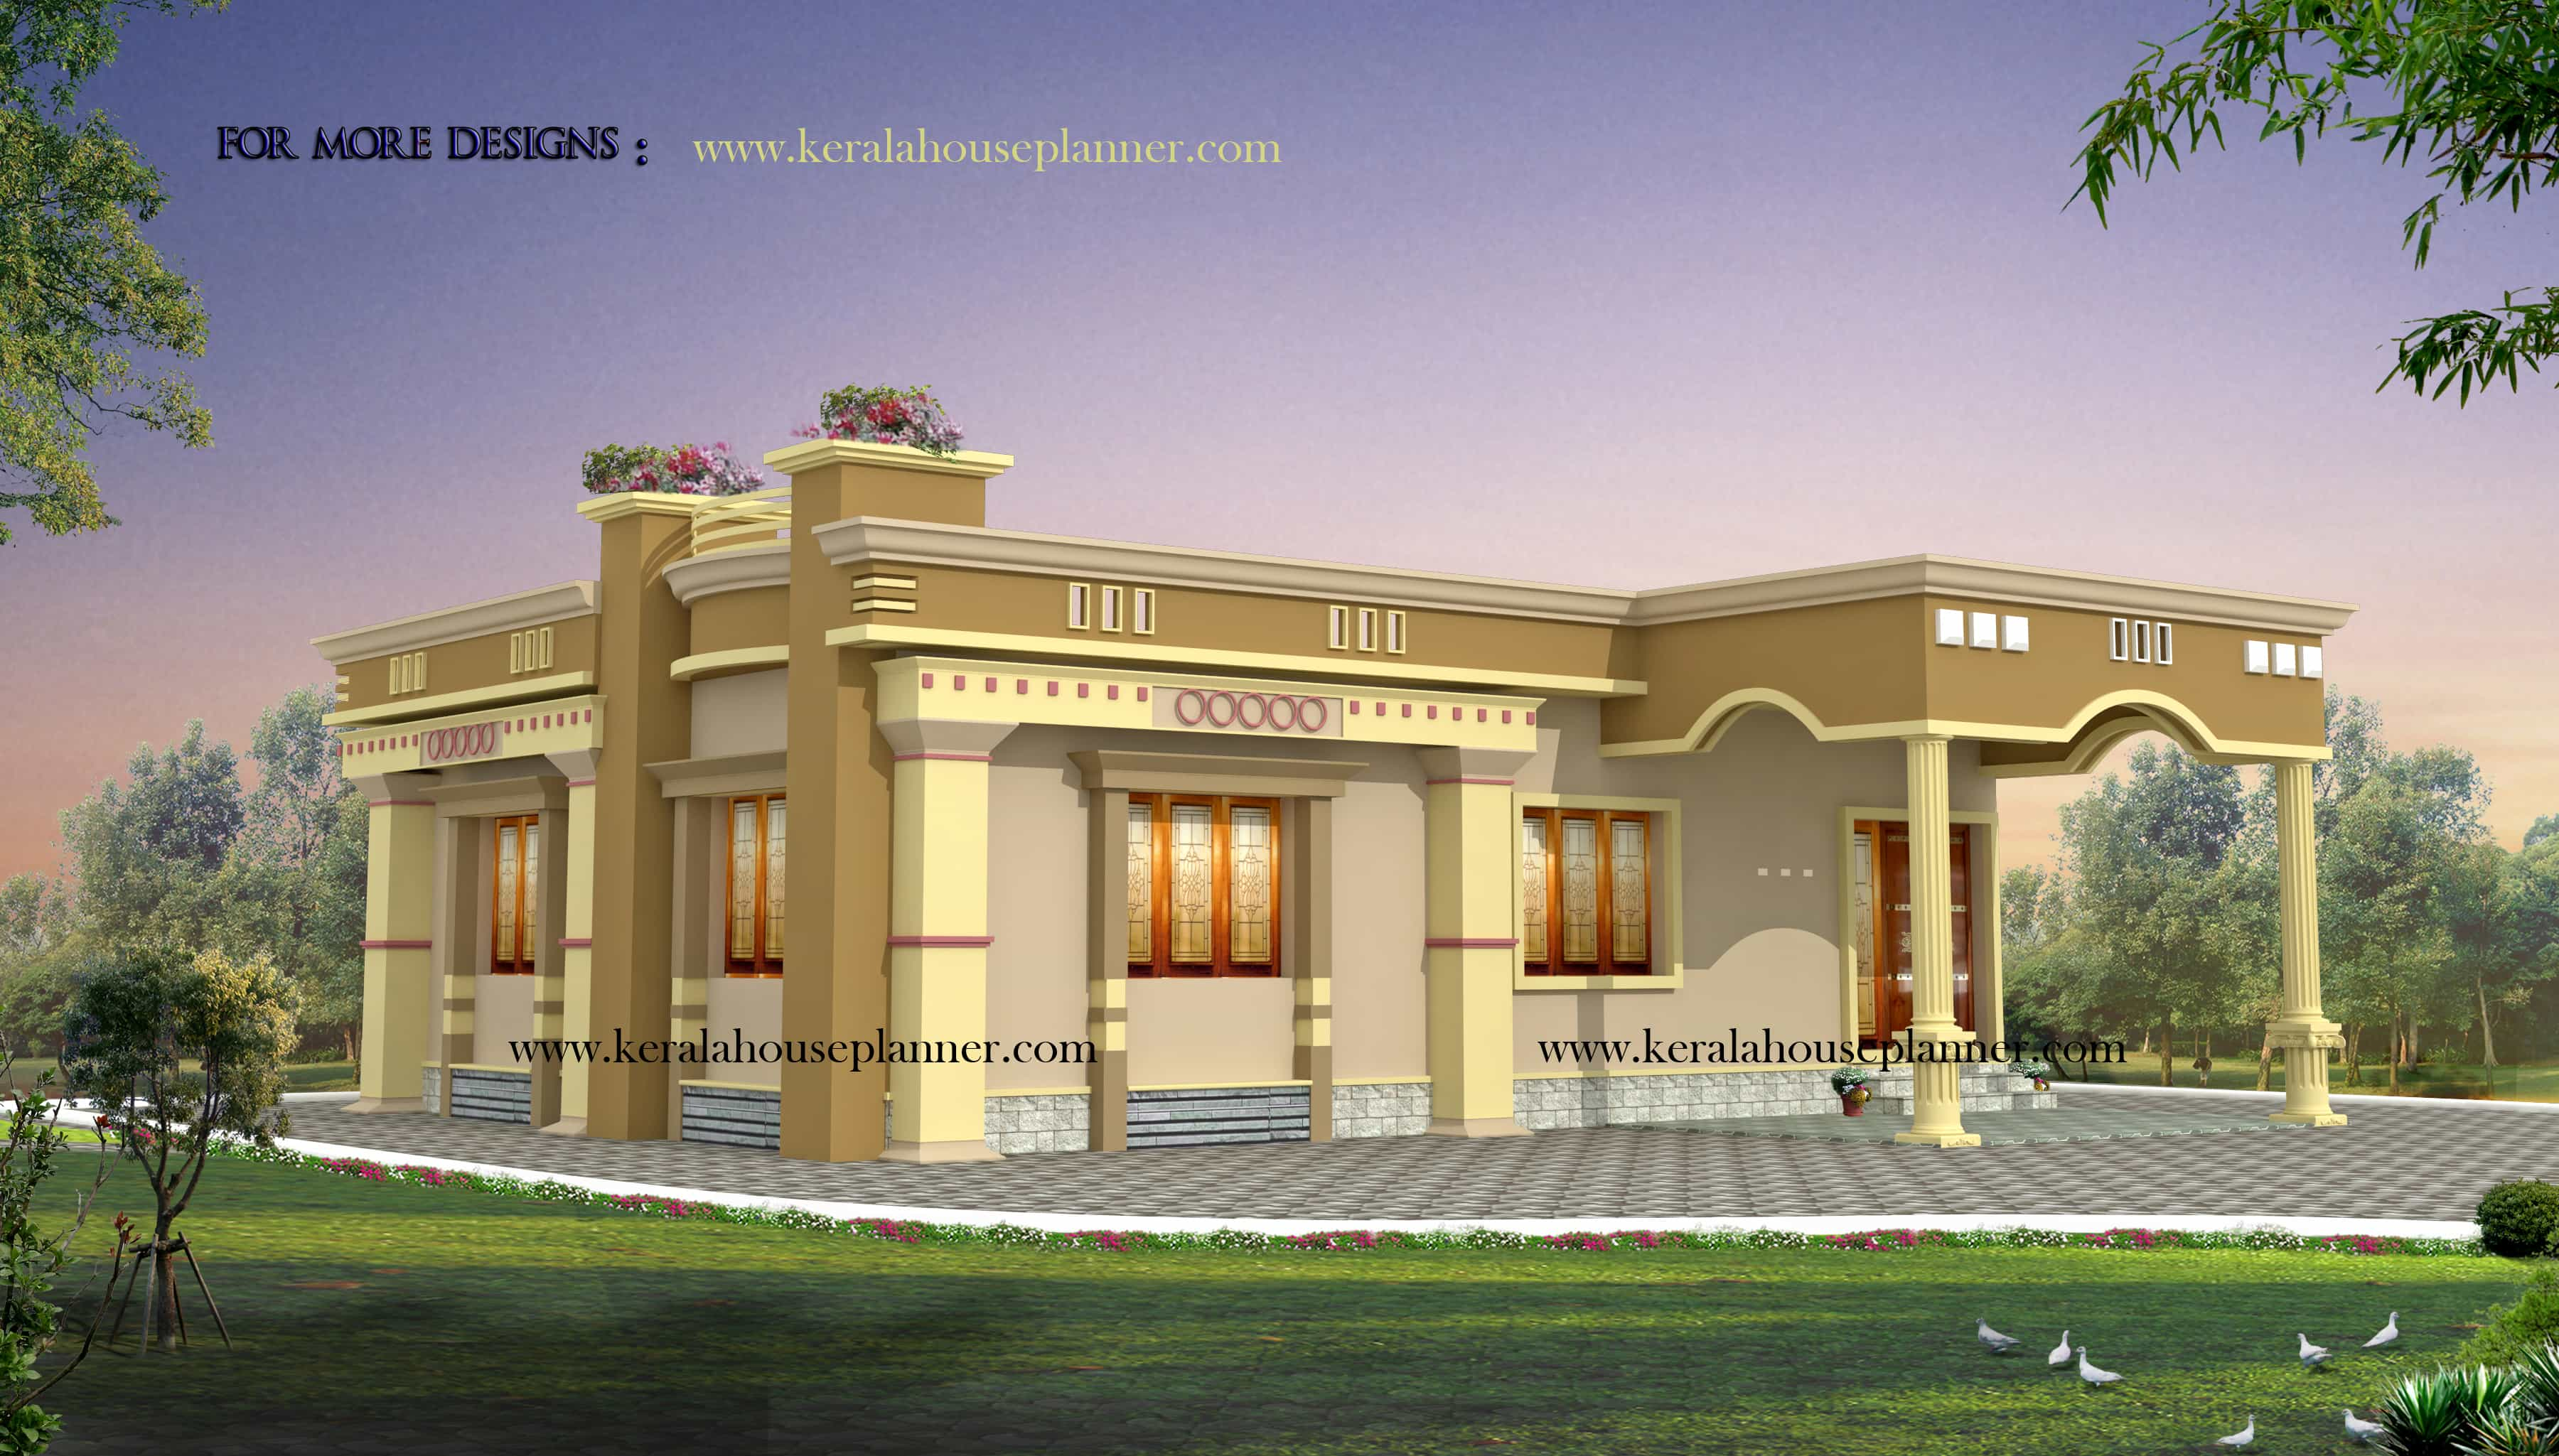 Kerala house plans 1200 sq ft with photos khp for Home house plans